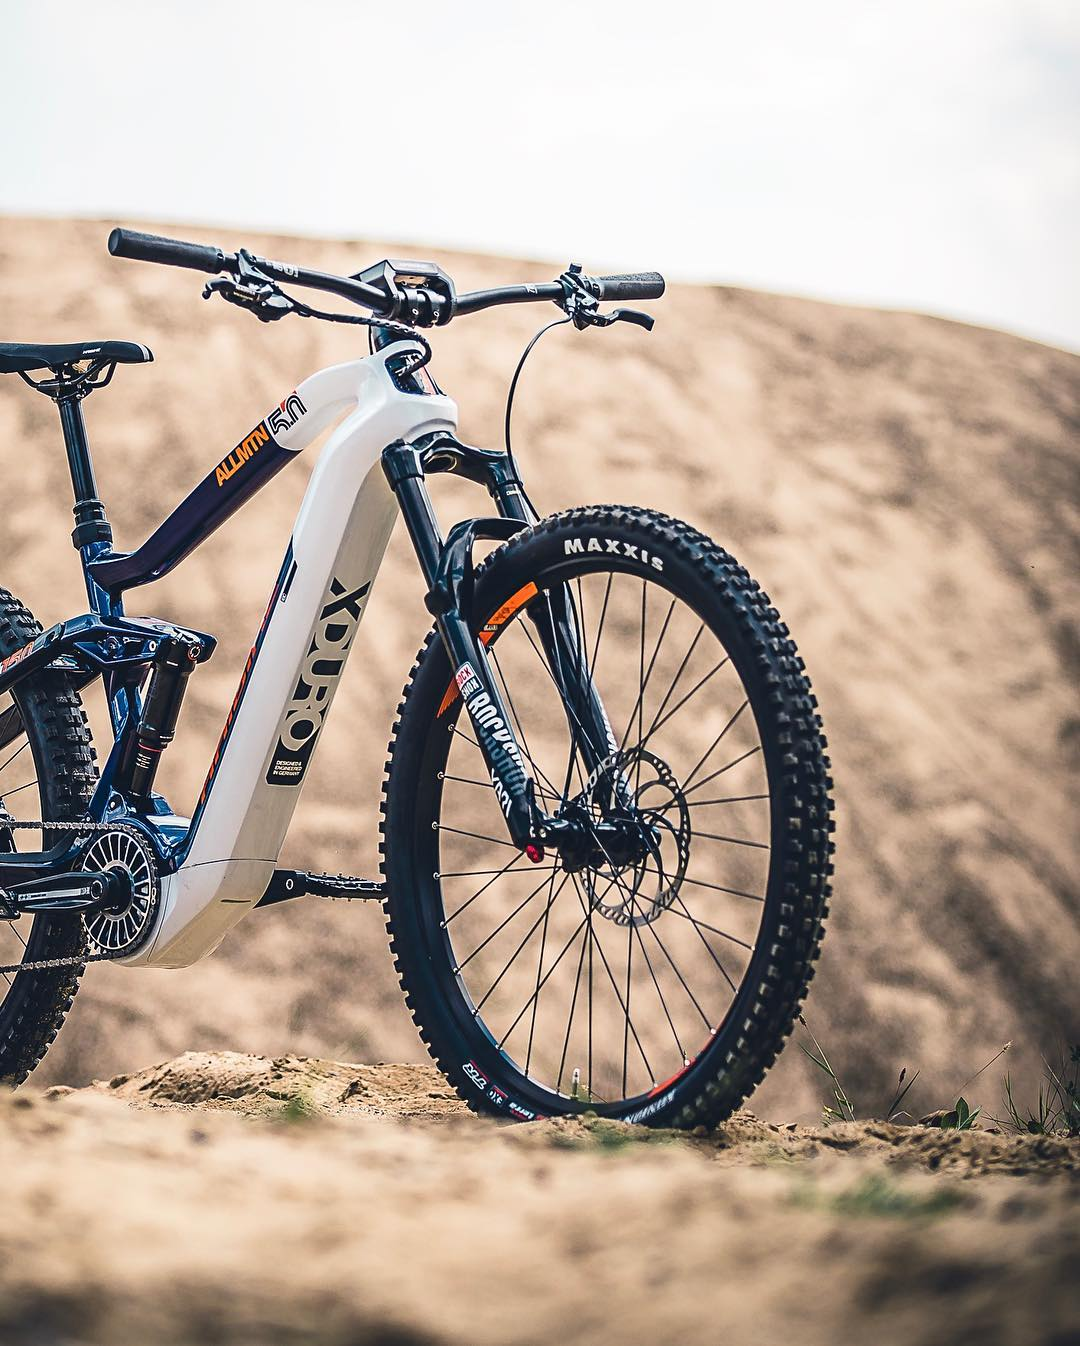 For 2019 the AllMtn FLYON models come with 29er front wheels. Advantages include reduced rolling resistance, increased stability while retaining quick handling, and an enhanced ability to roll over obstacles, all translating into a smoother, faster ride for you out on the trails. 📷 @hdc_m #emtb #ebike #allmountain #enduro #mountainbike #emountainbike #pedelec #flyon